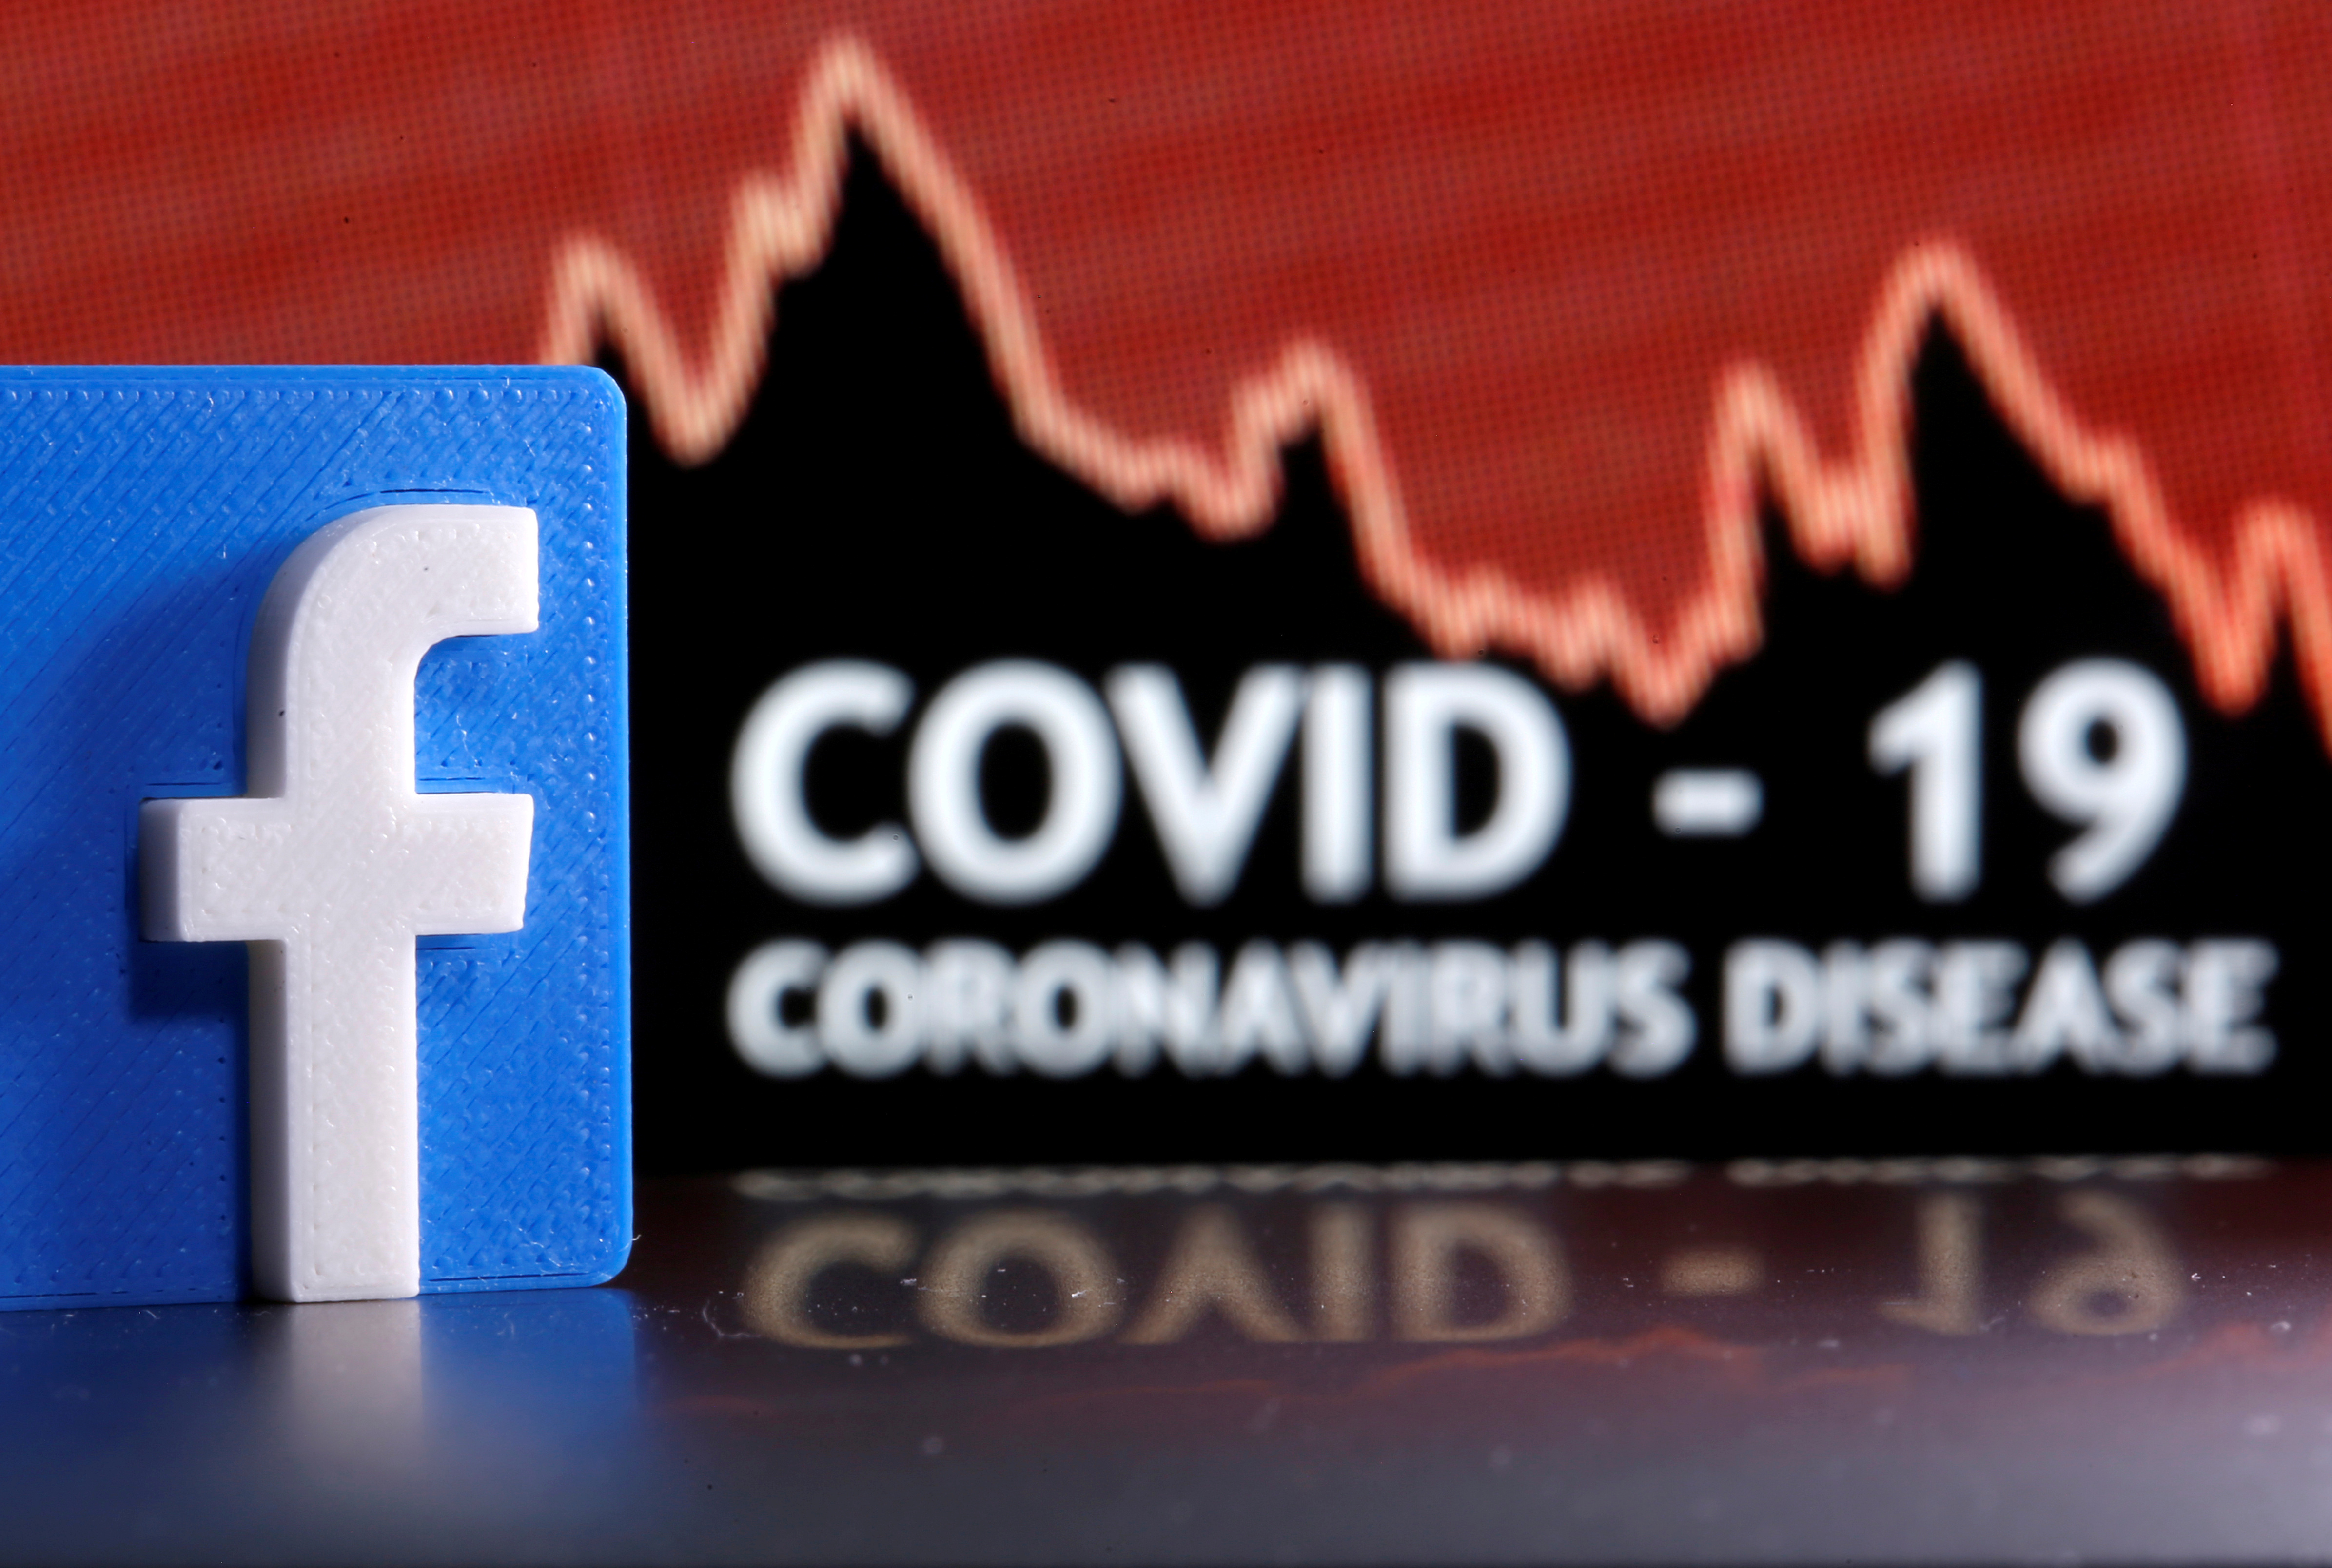 A 3D-printed Facebook logo is seen in front of displayed coronavirus disease (COVID-19) words in this illustration taken March 24, 2020. Picture taken March 24, 2020. REUTERS/Dado Ruvic/Illustration/File Photo